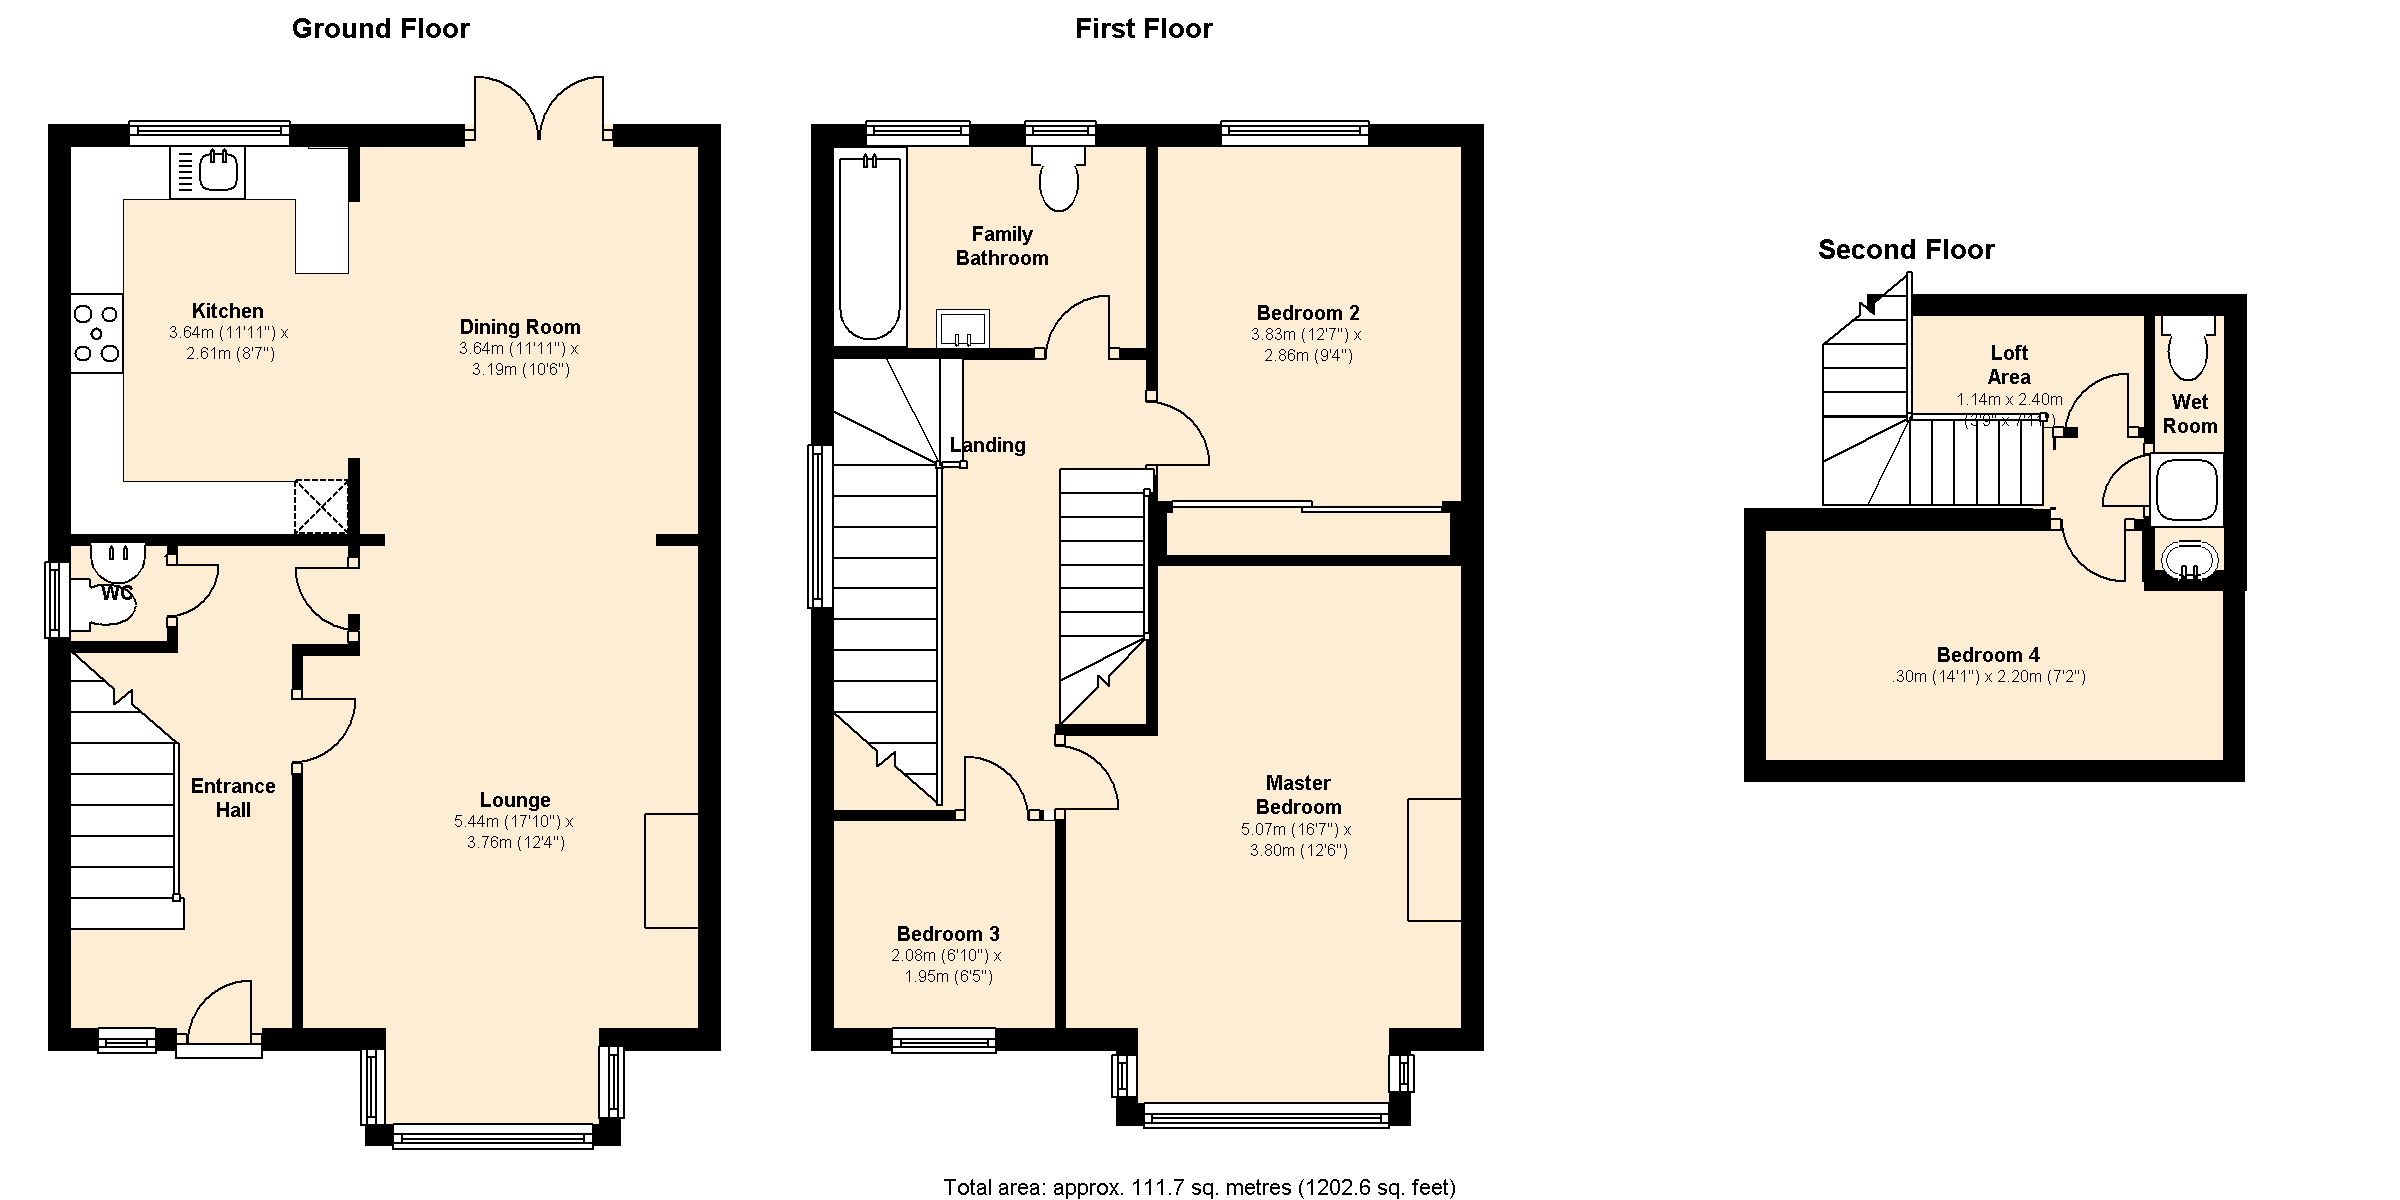 floor plans commercial epcs and decs for london amp the the mobile agent floor plan software for estate agents